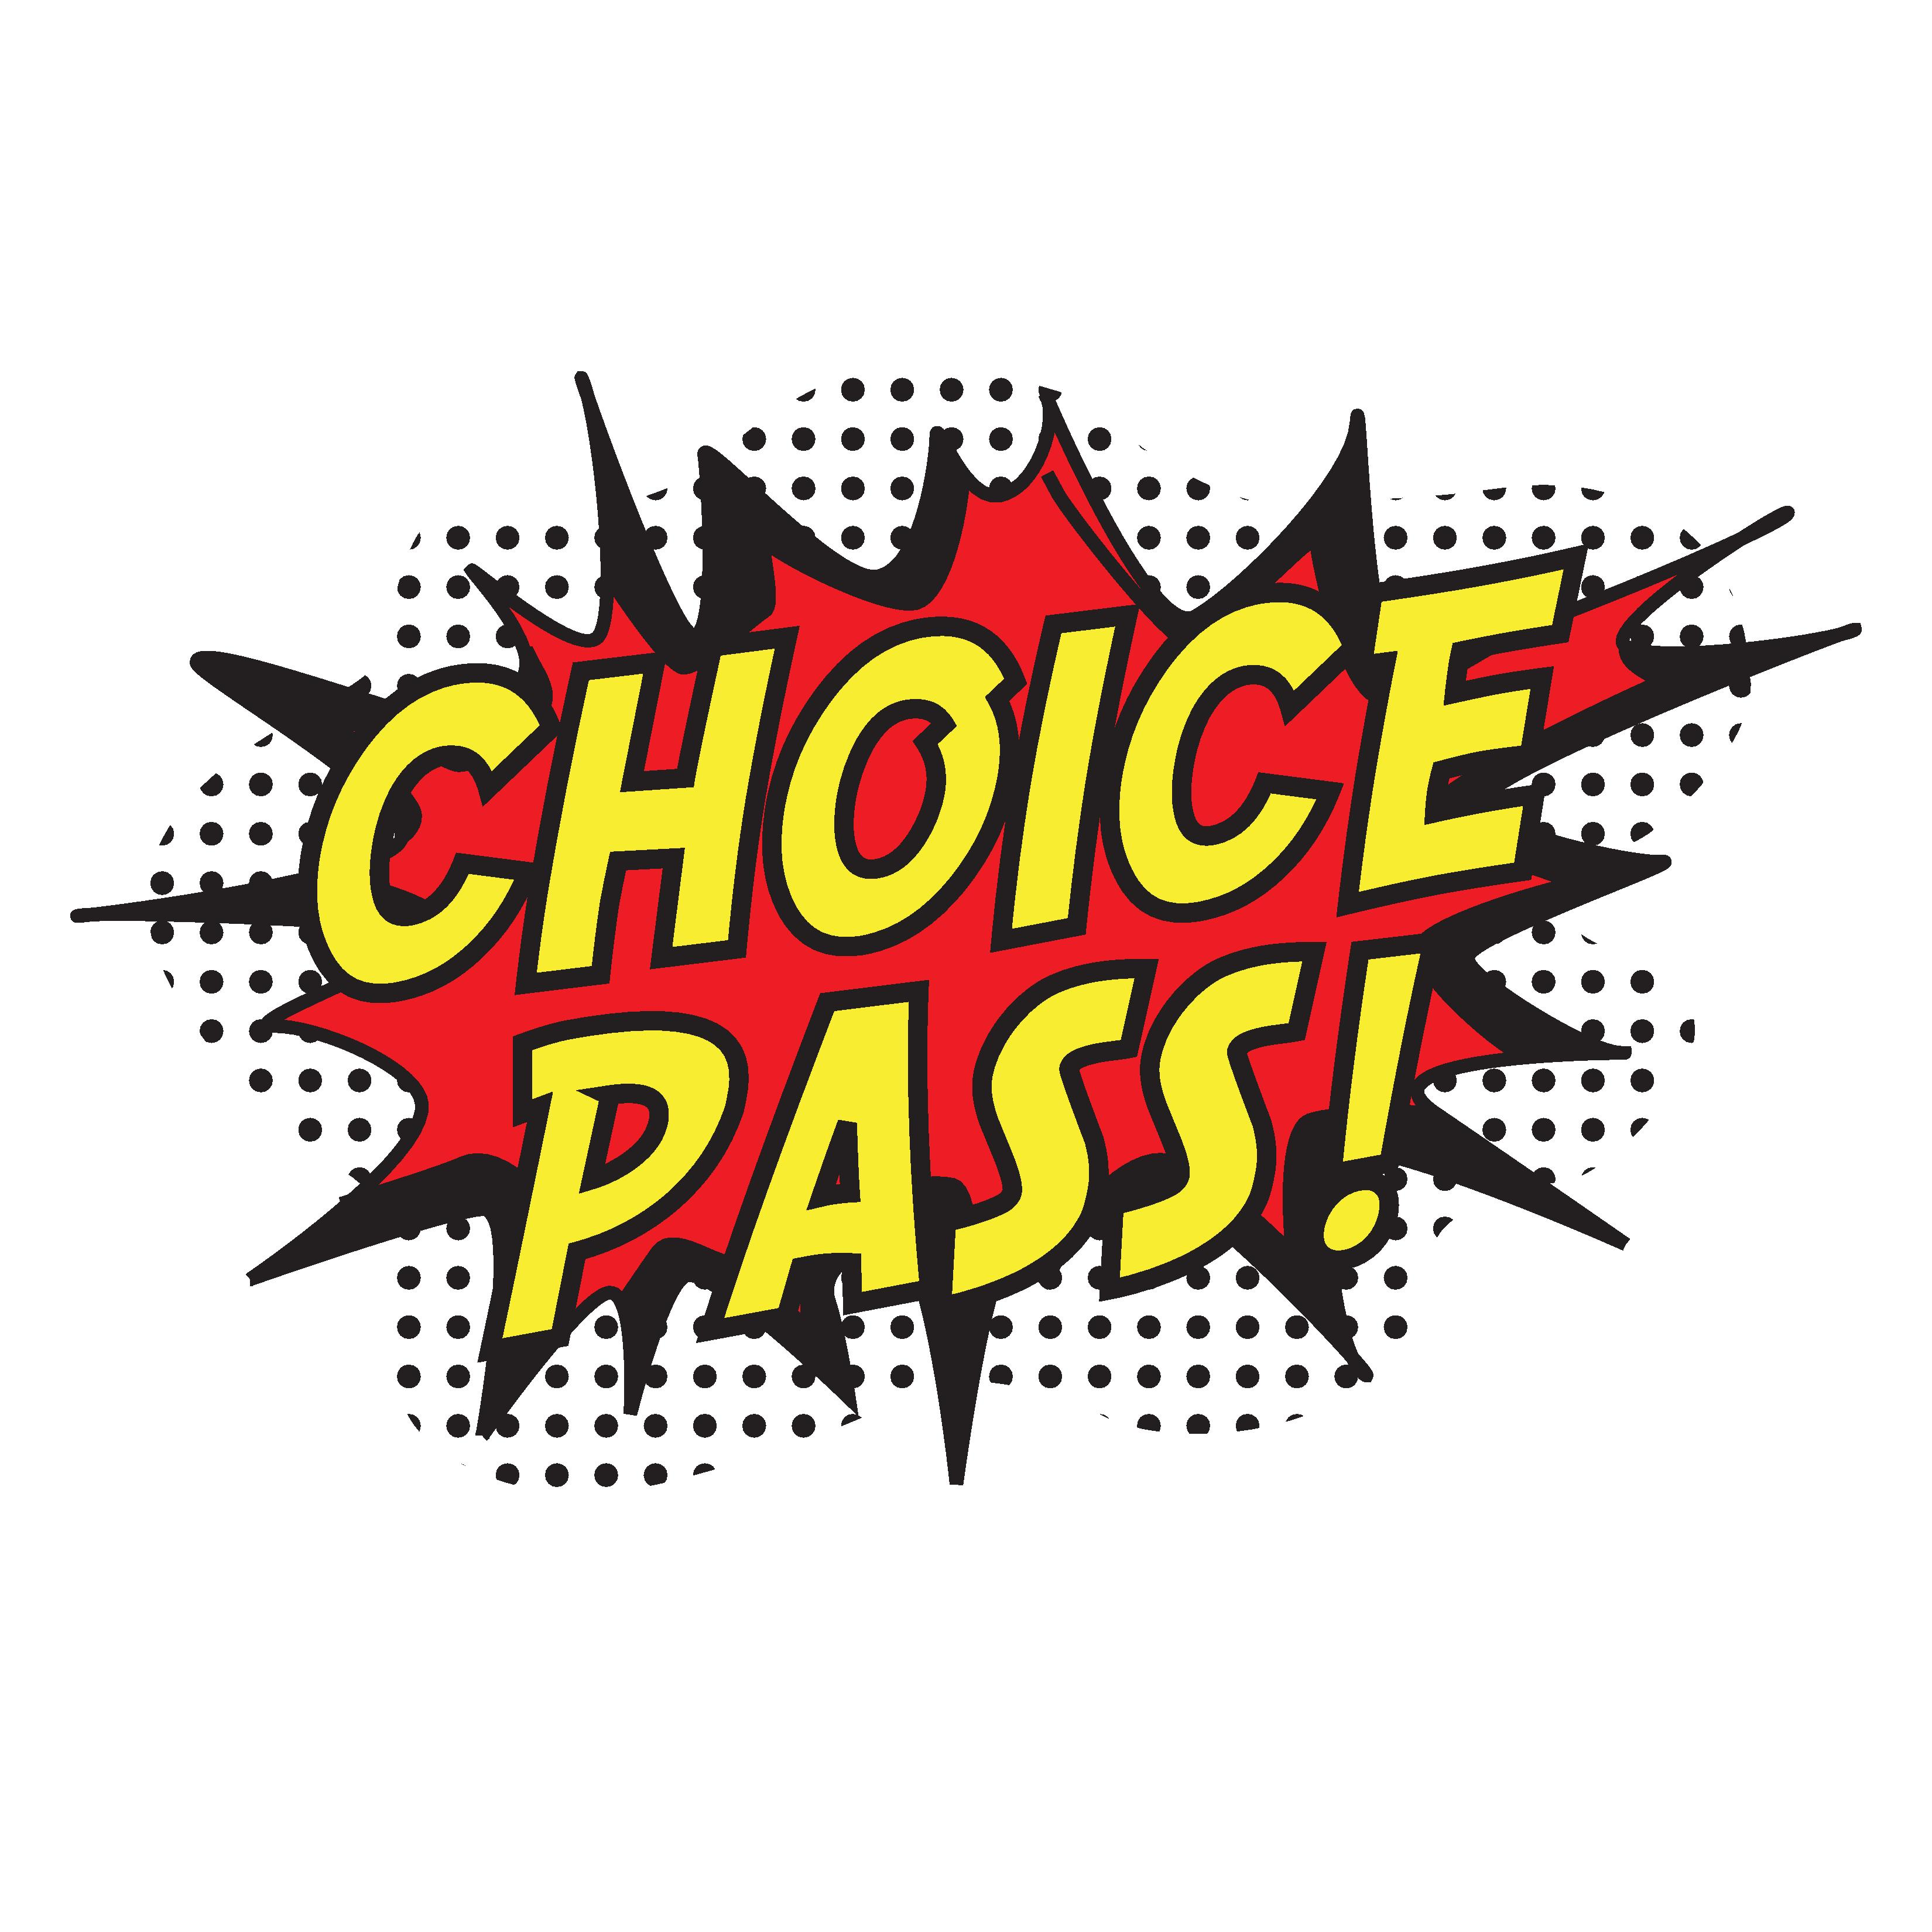 Choice Pass